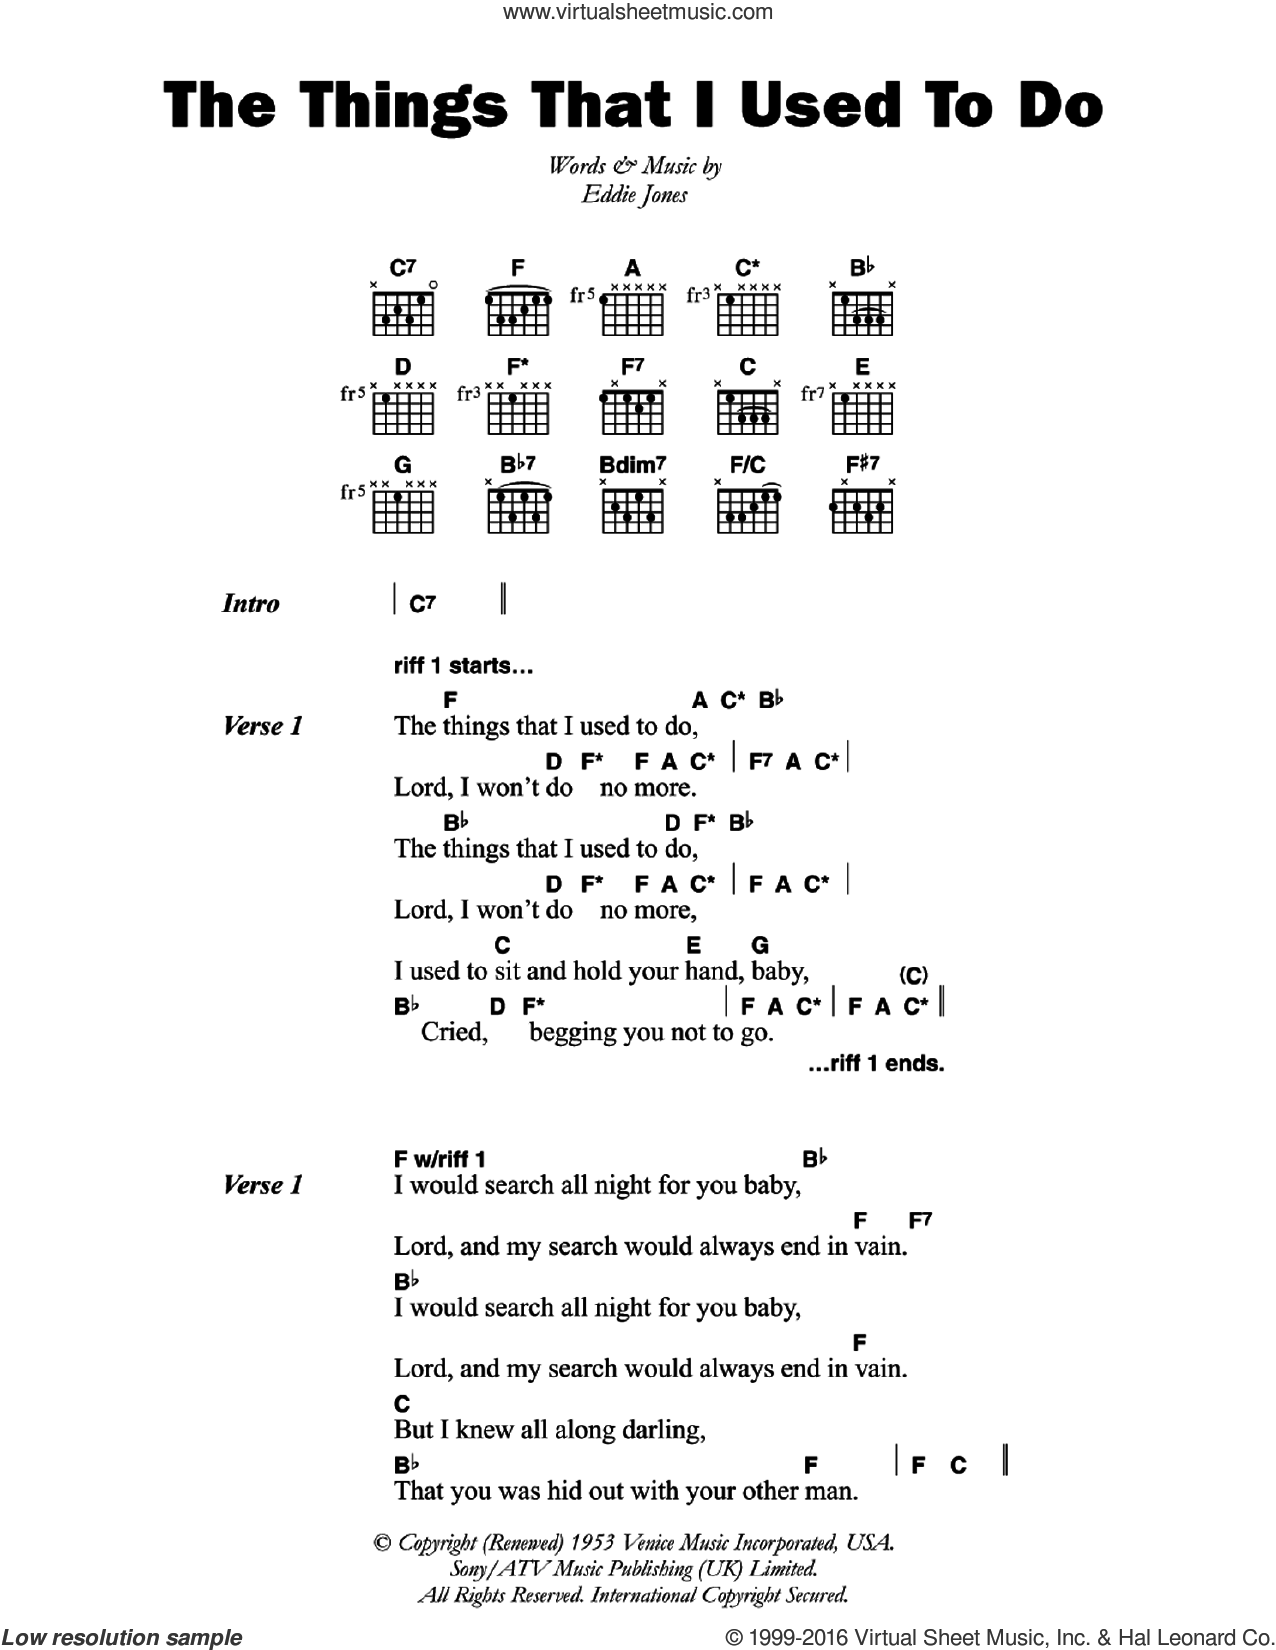 The Things That I Used To Do sheet music for guitar (chords) by Eddie